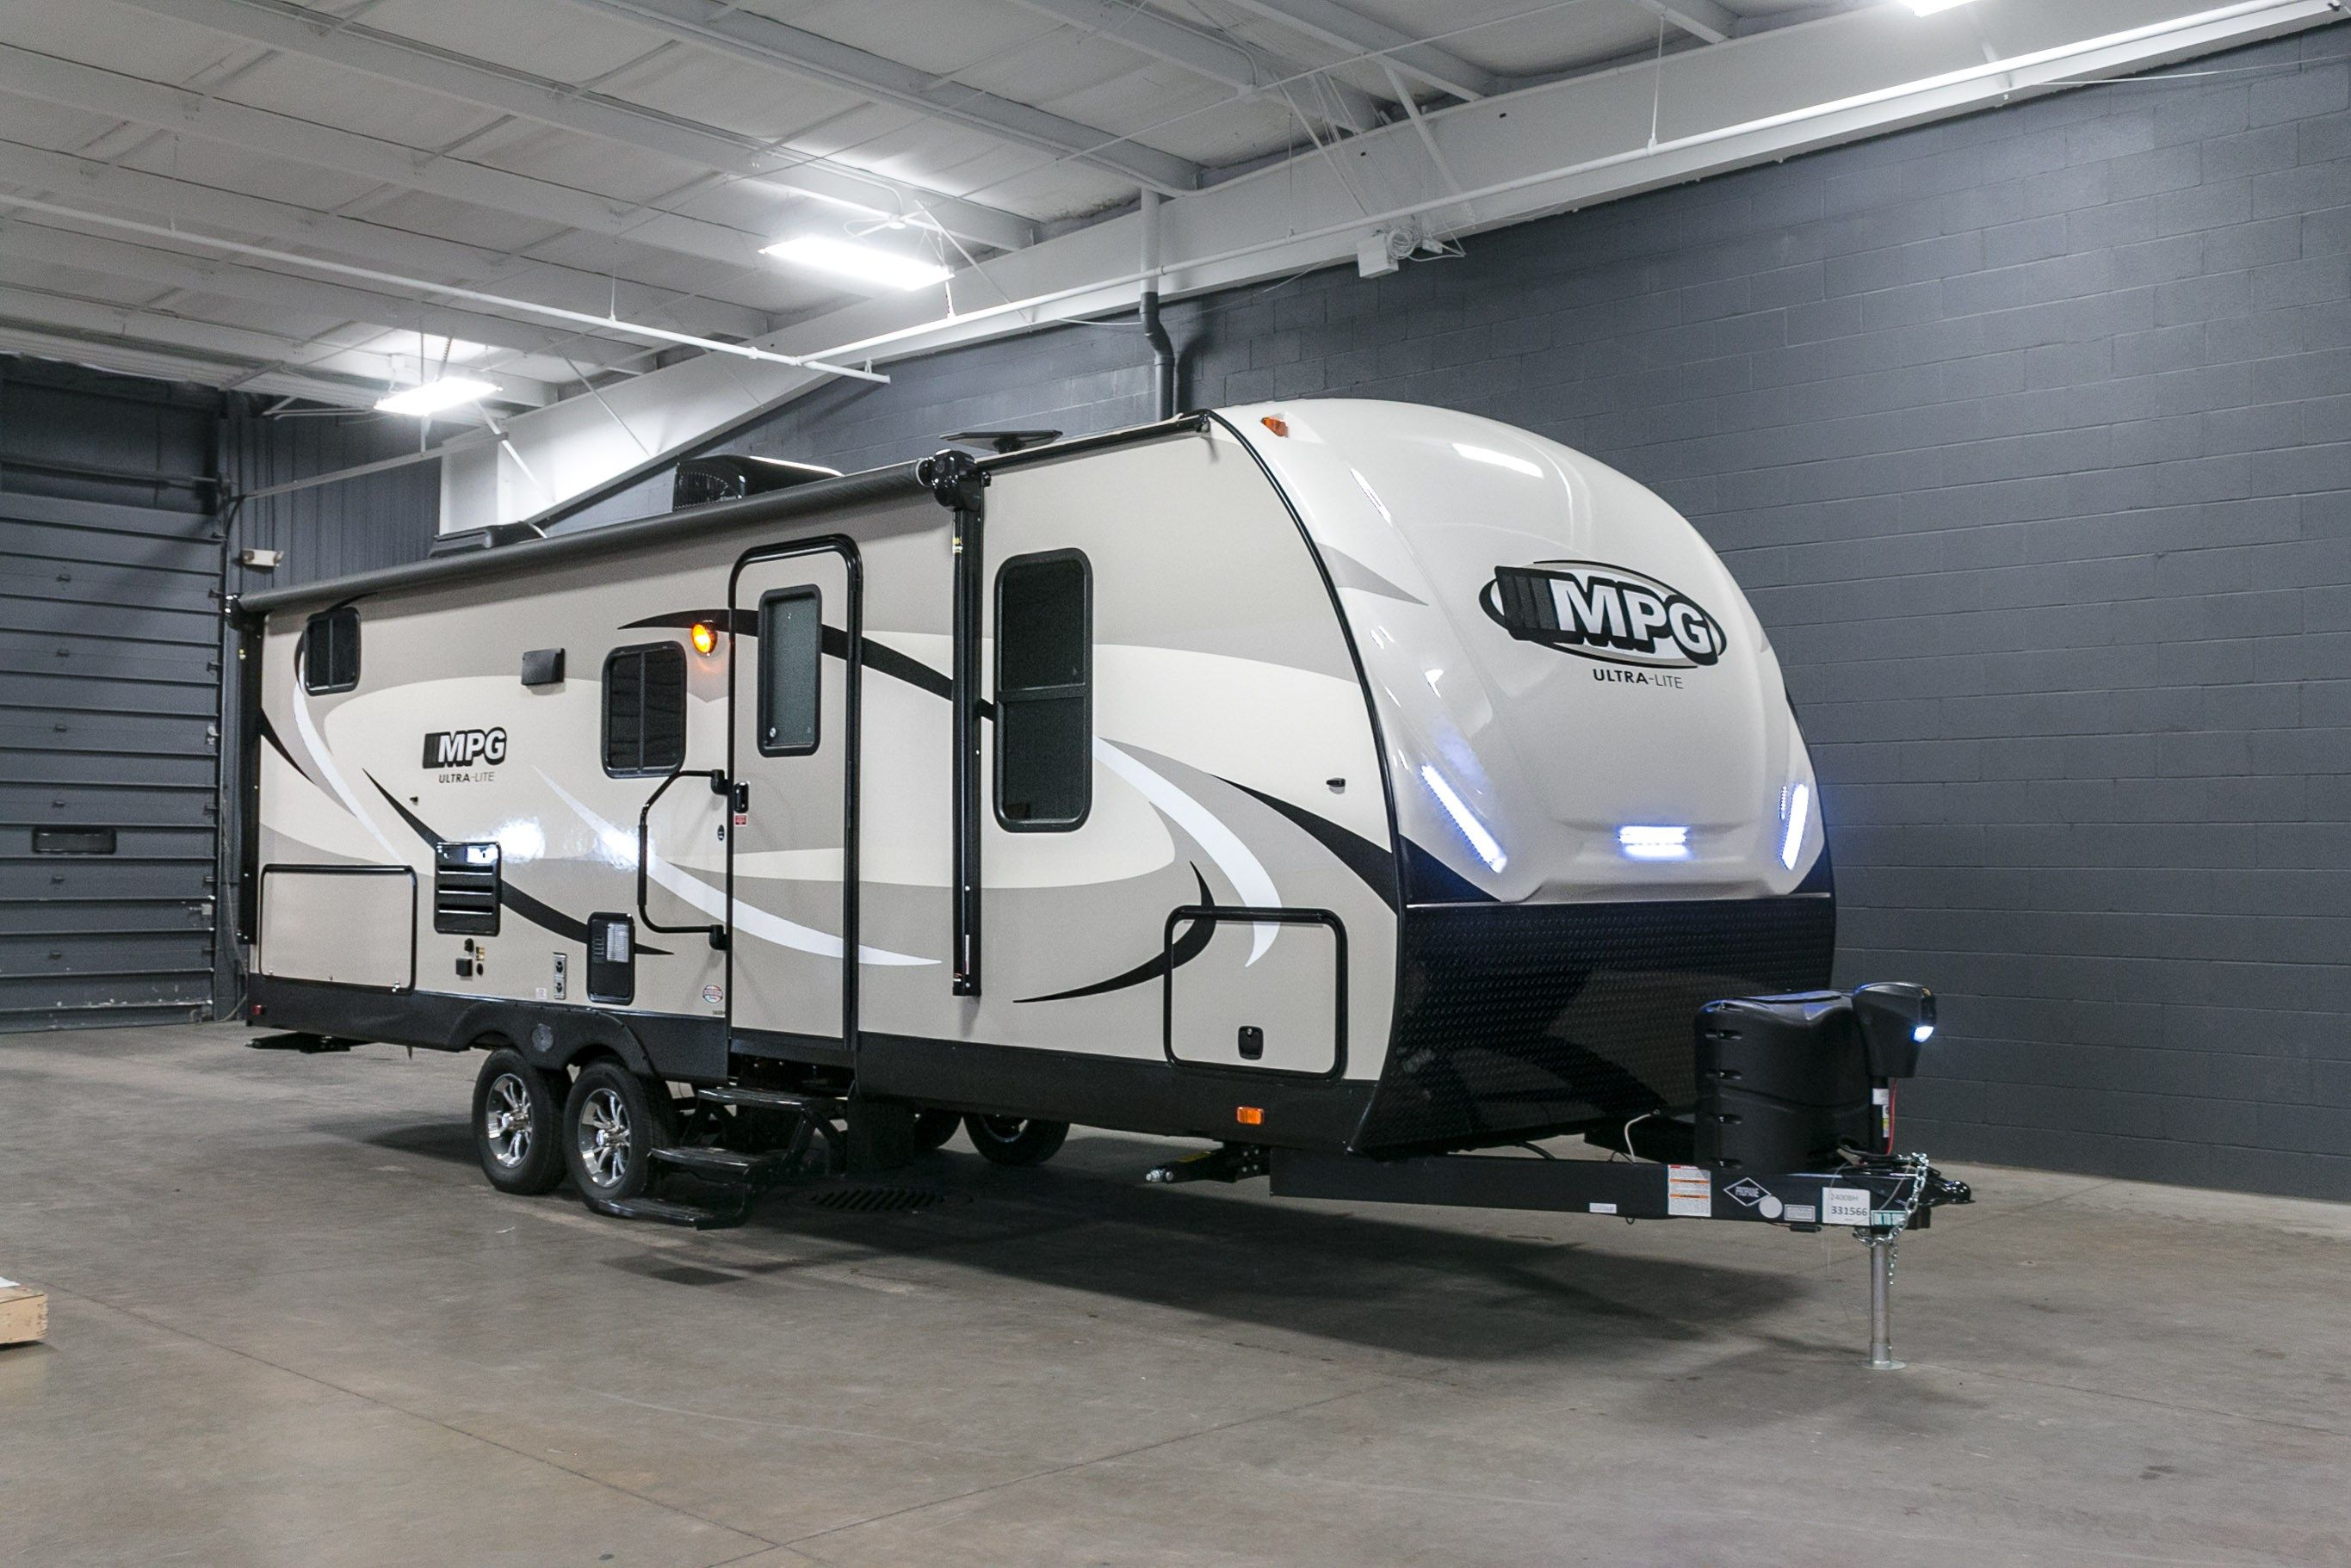 Turn A Small Space Into A Large Pantry Rv World Camper Trailer